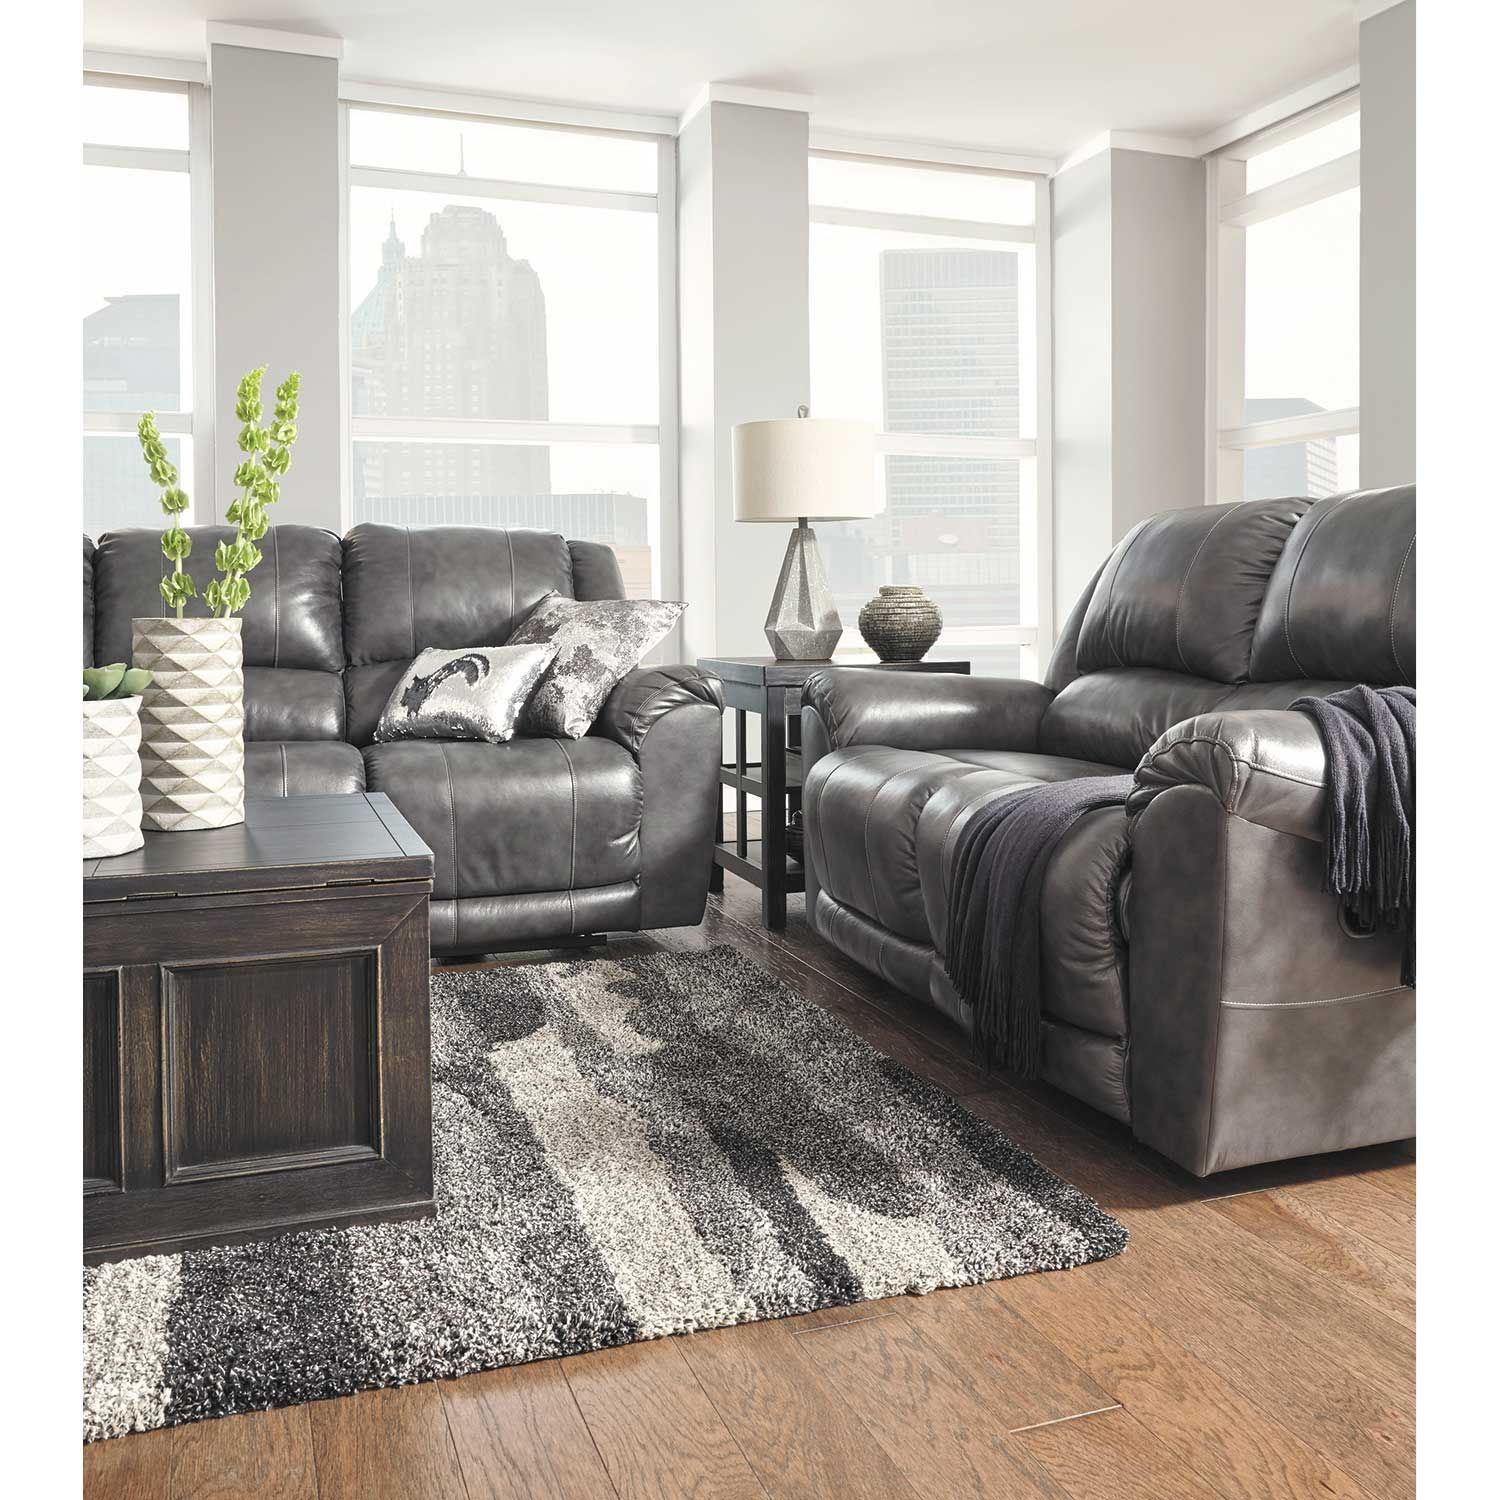 Ashley Furniture Manufacturers: Persiphone Charcoal Leather Reclining Sofa